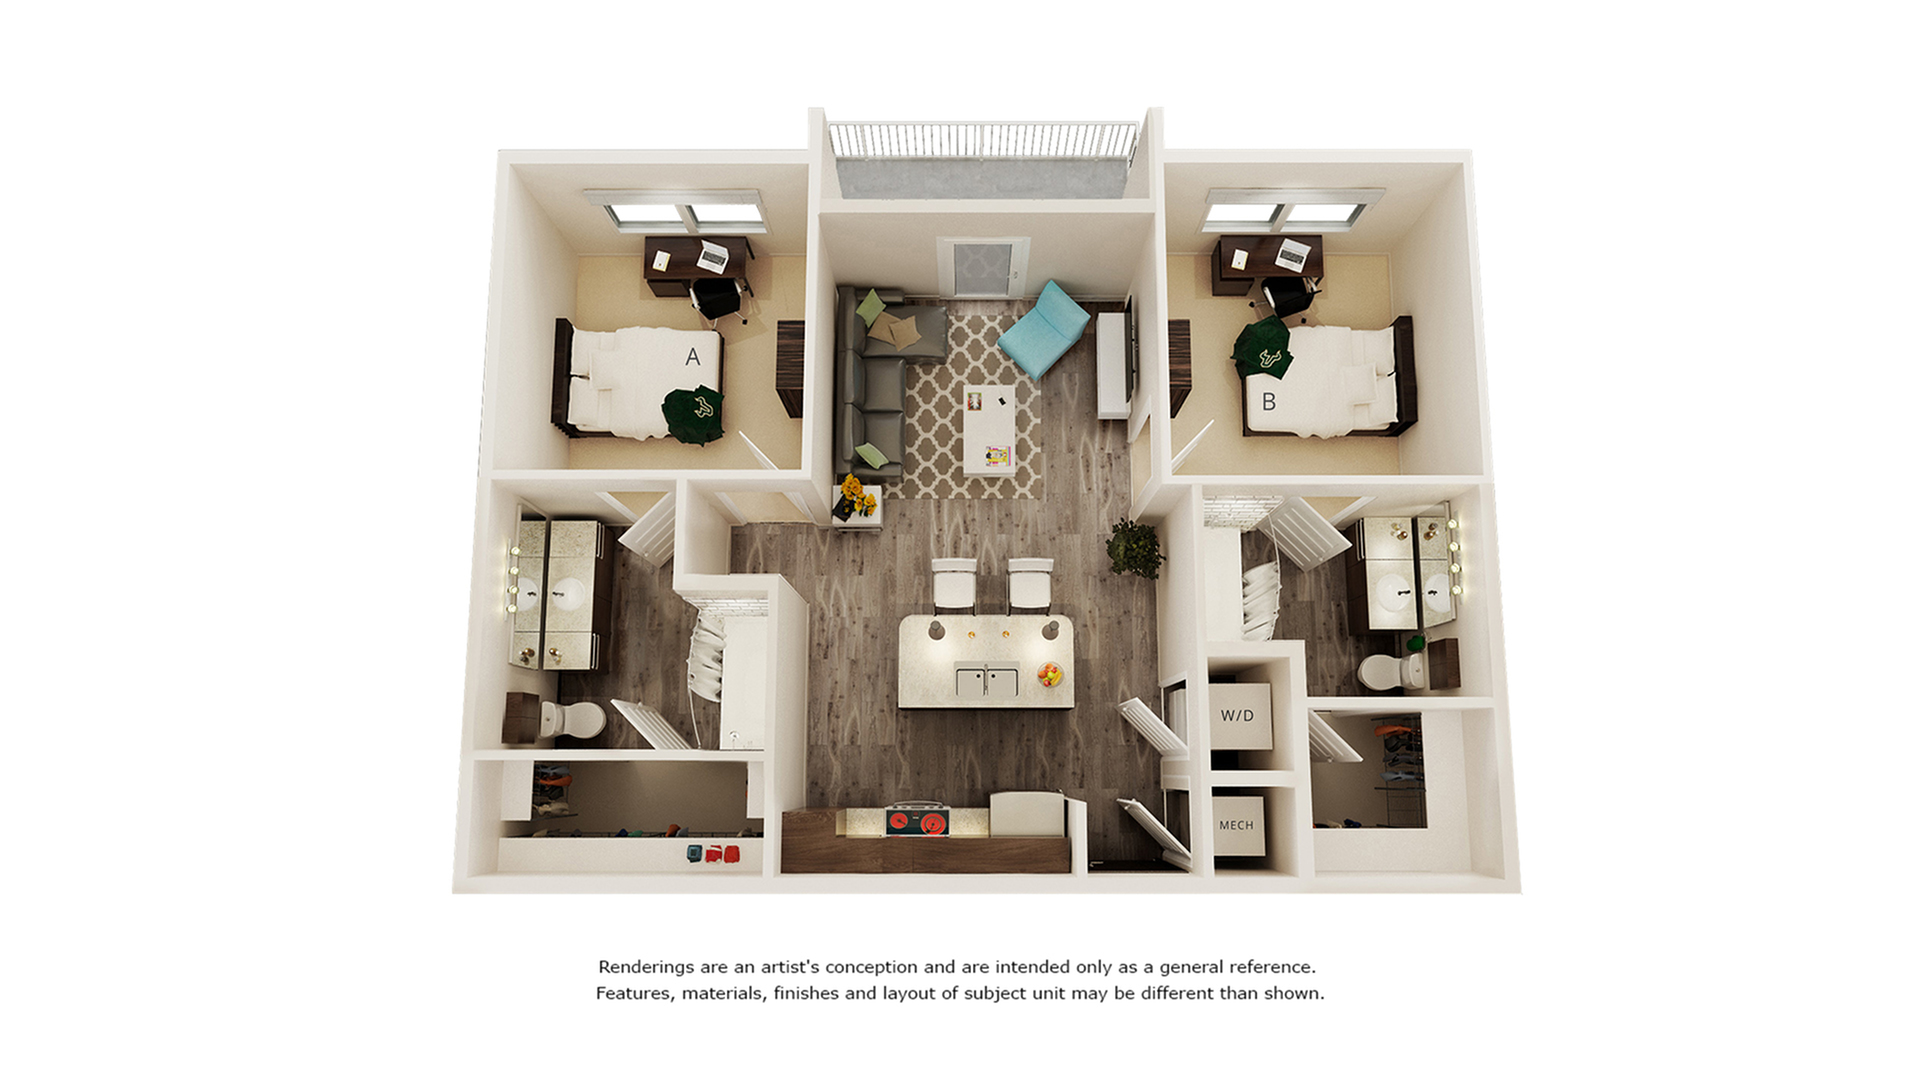 Einstein 2 bedrooms 2 bathrooms floor plan